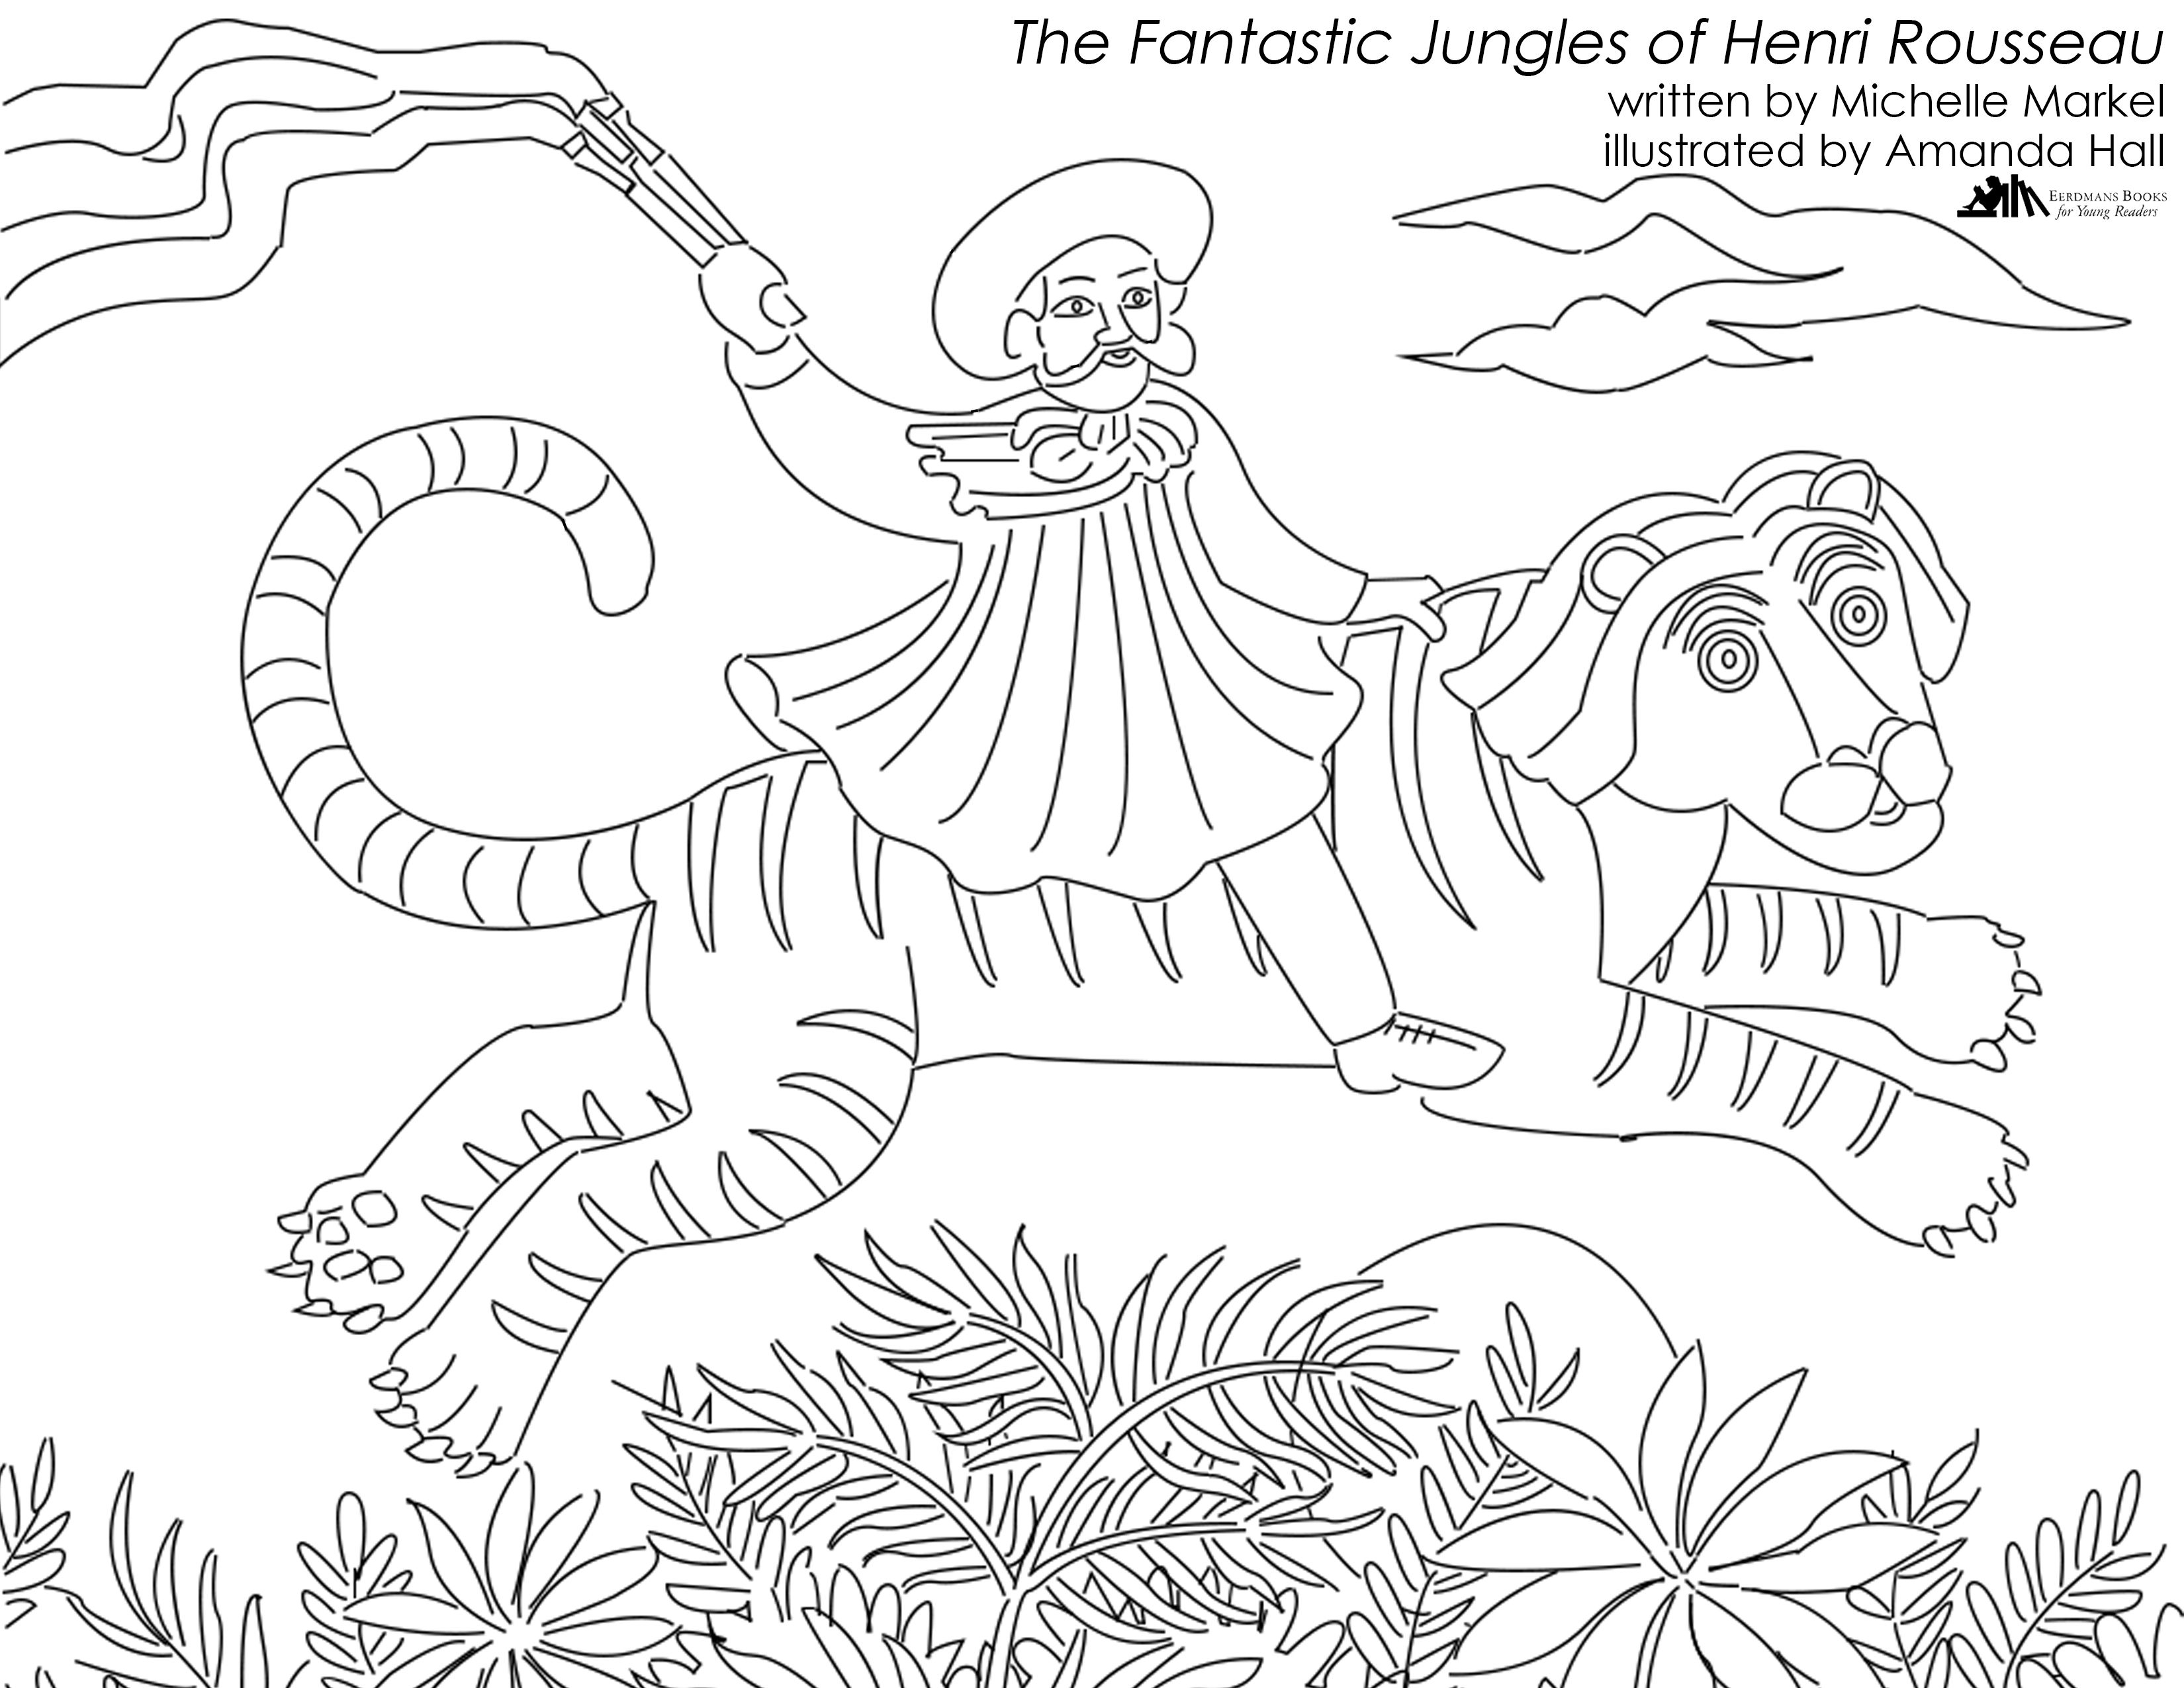 3300x2550 Best Of Fantastic Jungles Of Henri Rousseau Coloring Page Free